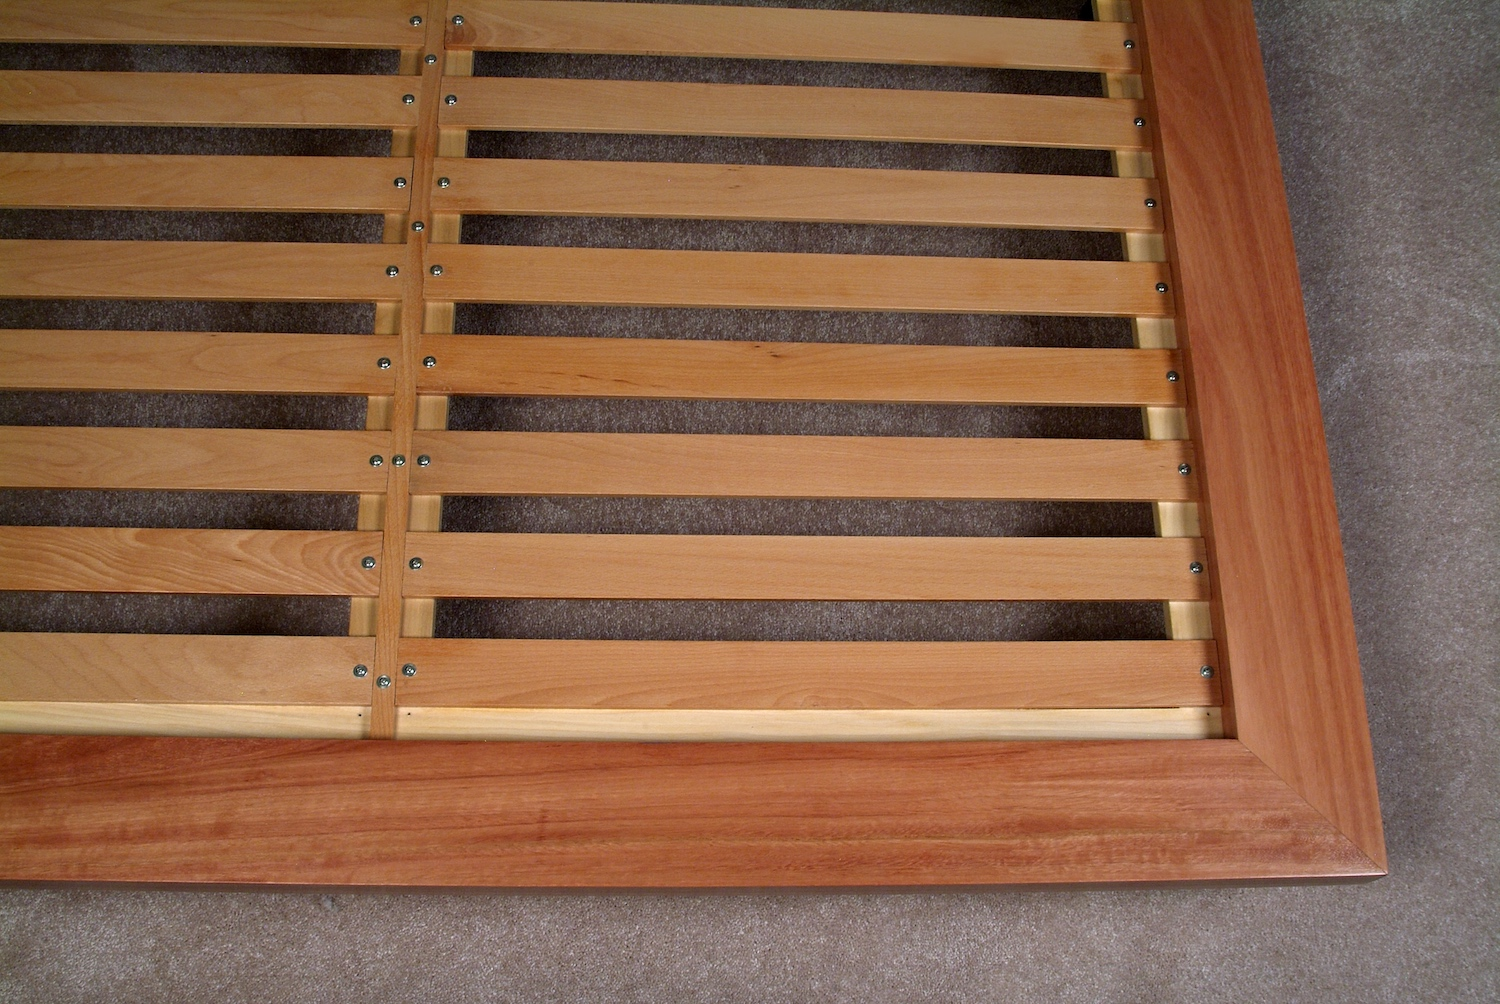 Detail Image of Platform Bed with Beech Slats.